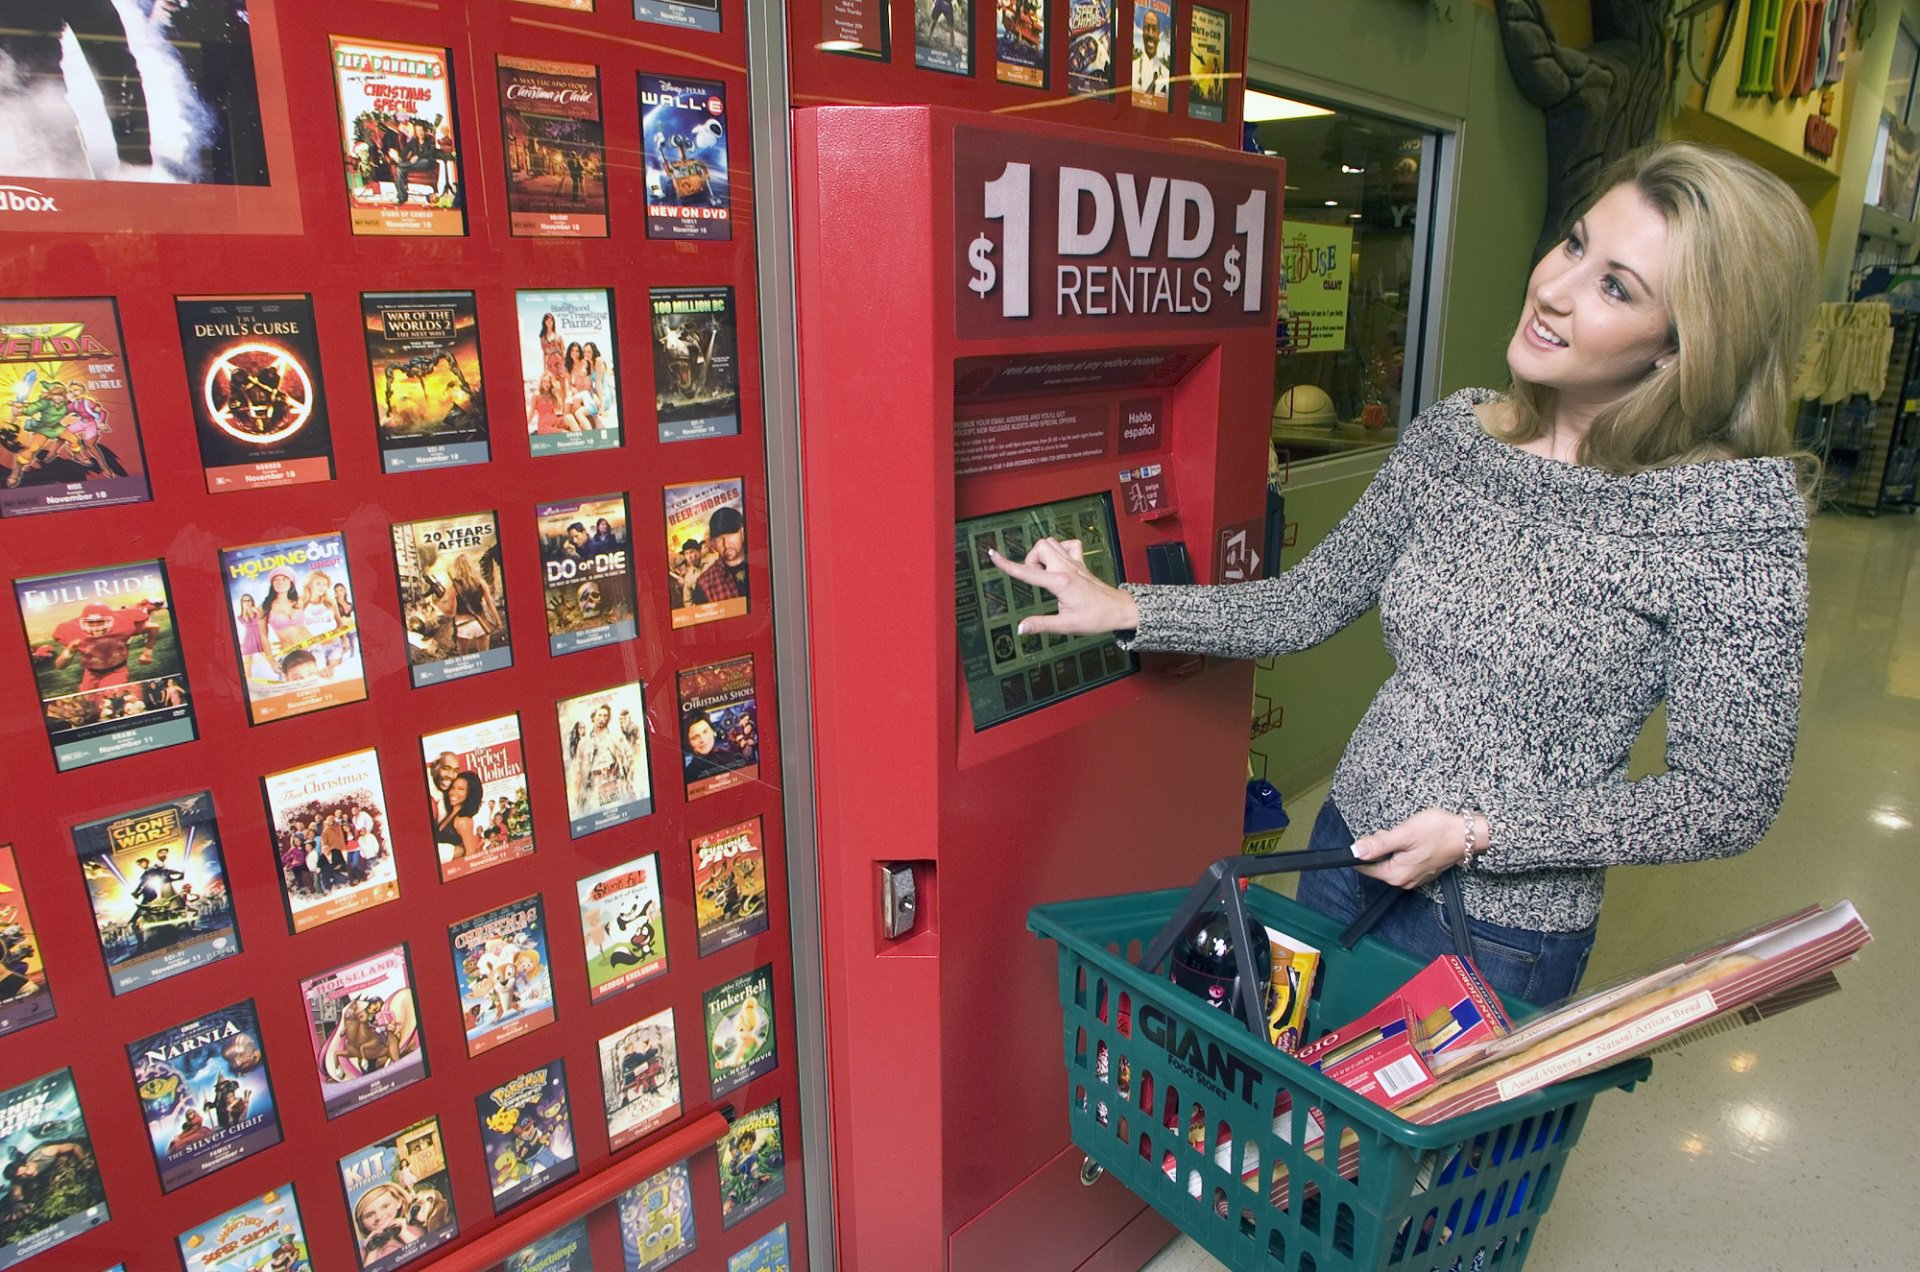 disney sues redbox over its sale of digital download codes